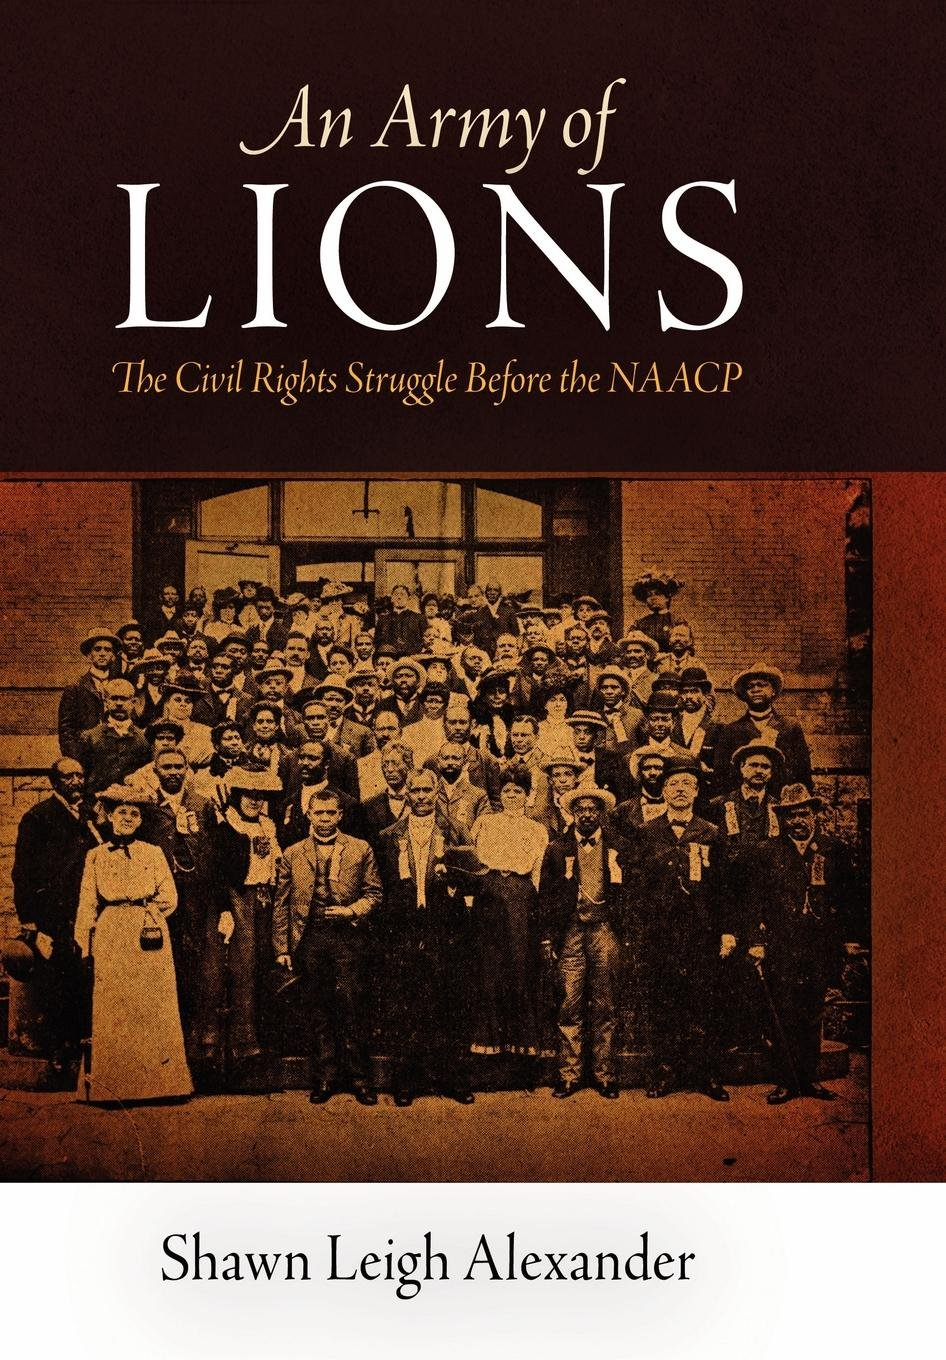 An Army of Lions: The Civil Rights Struggle Before the NAACP (Politics and Culture in Modern America) pdf epub